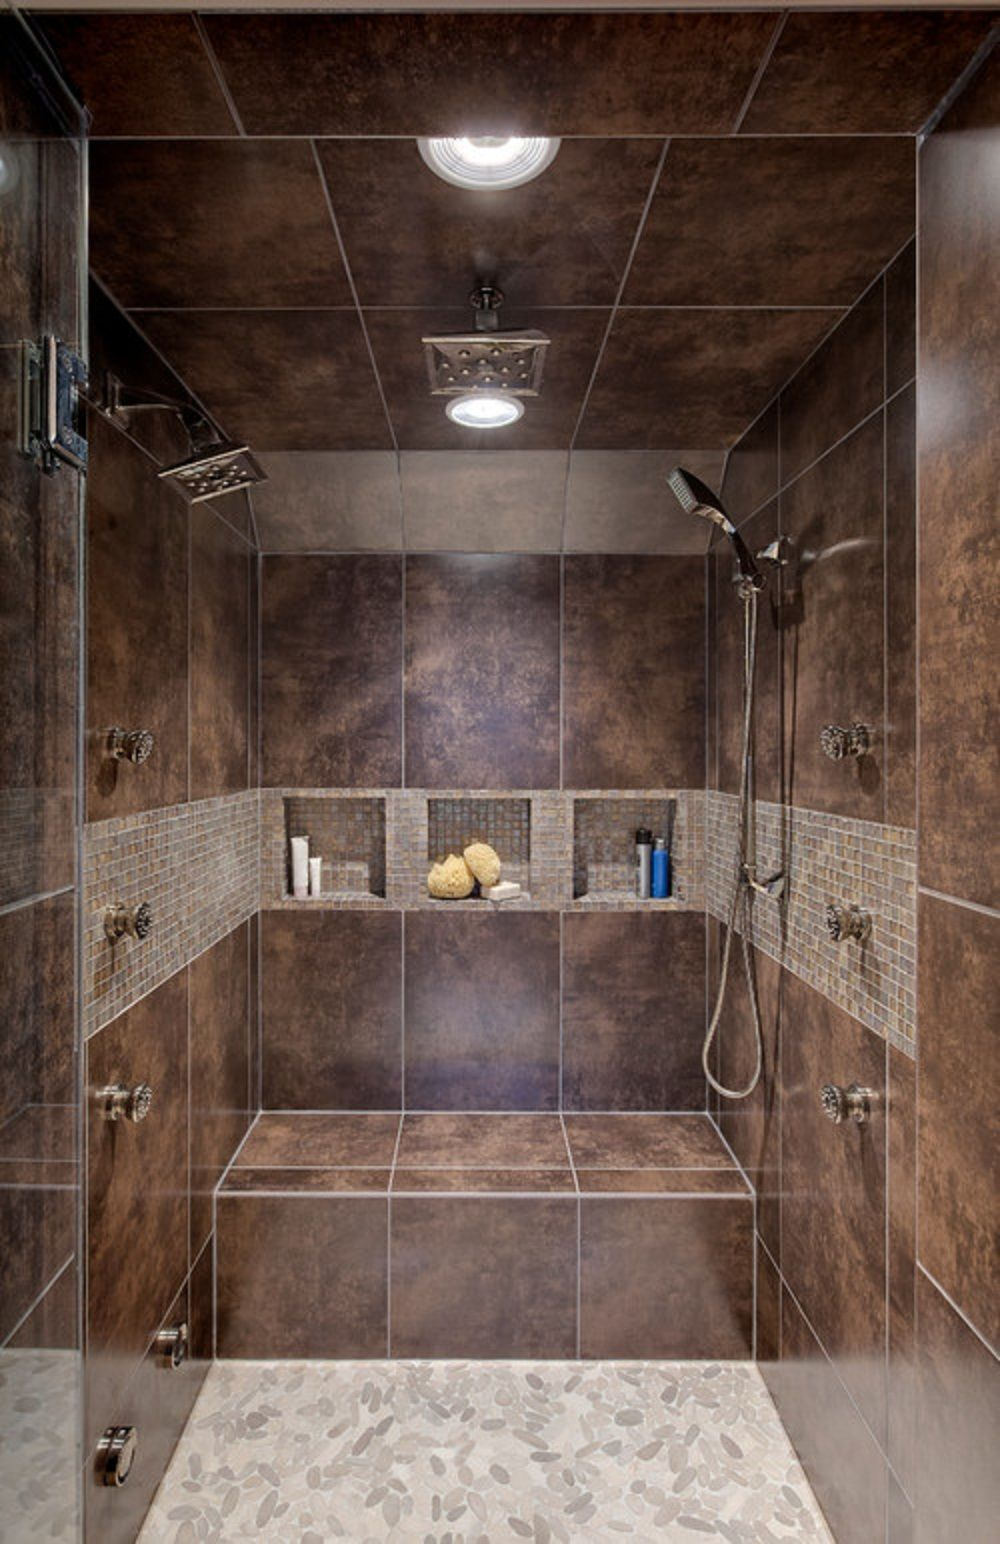 bathroom small square wall niches mixed with brown tile bench in classy walk in shower ideas gorgeous design of shower room allows to walk in showers - Walk In Shower Tile Design Ideas